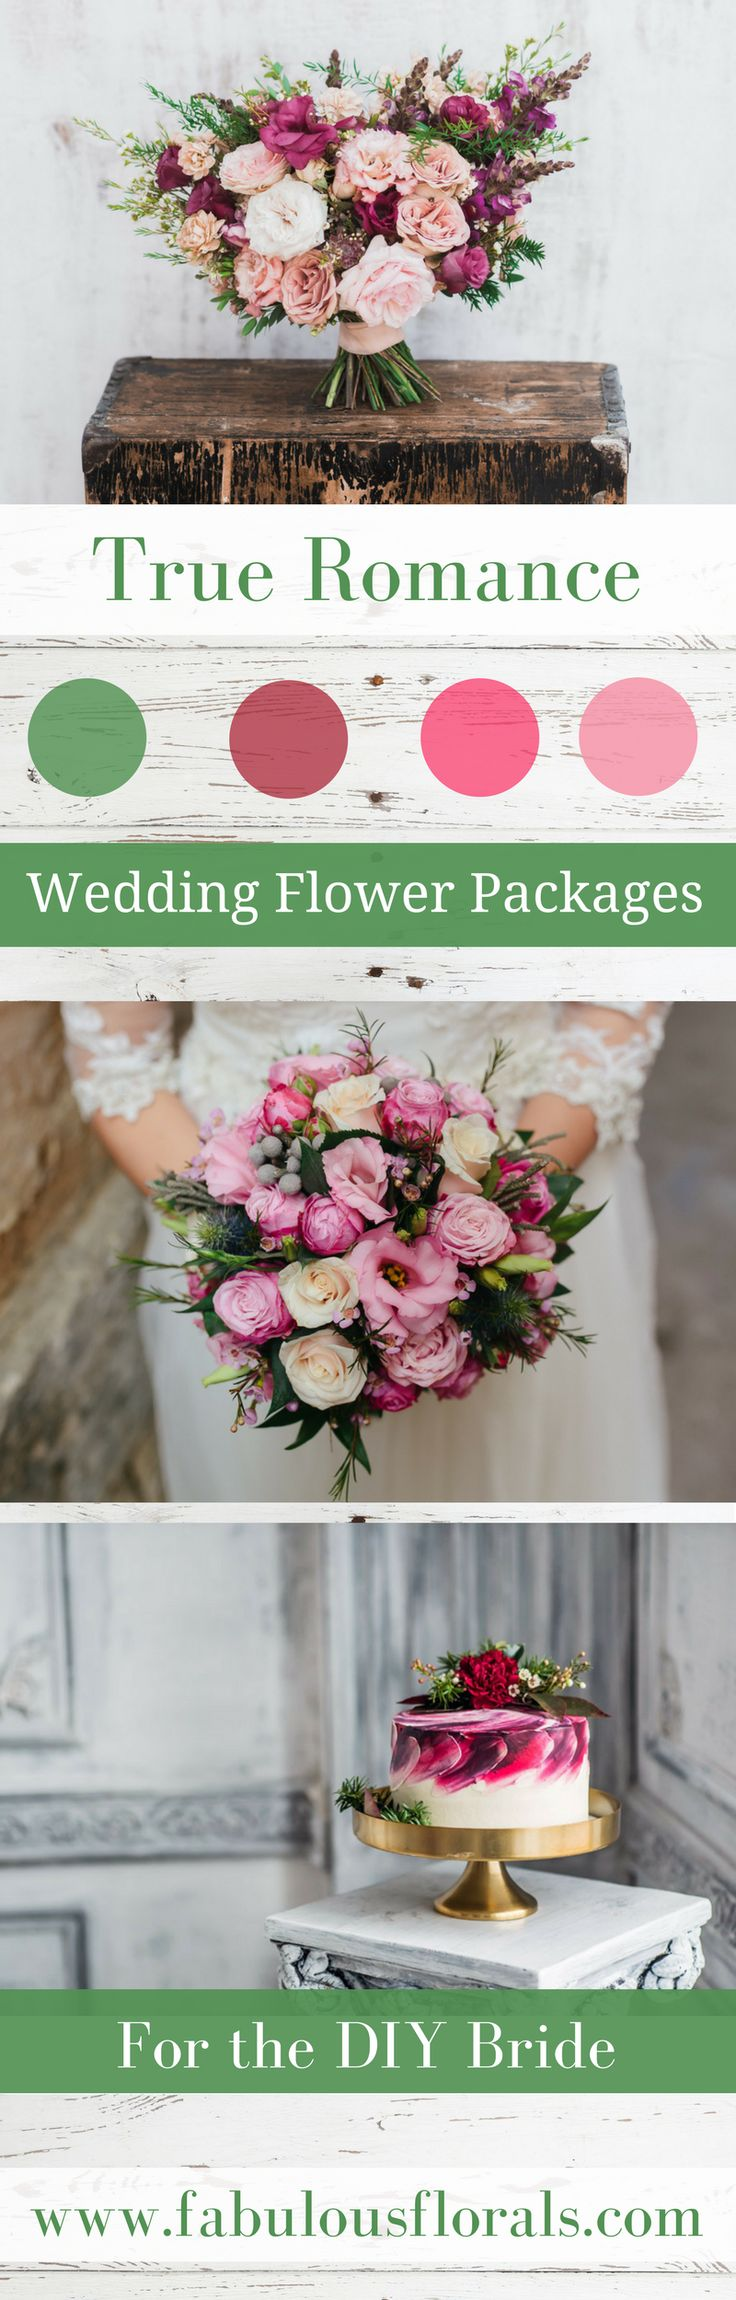 Wedding Trends!  Garden DIY wedding Flower Packages! Buy Easy Complete DIY bouquet, Boutonniere & Centerpiece Flower packages online! How to make a wedding bouquet DIY wedding bouquet tutorials and instructions. #weddingflowerpackages #weddingflowers #weddingtrends